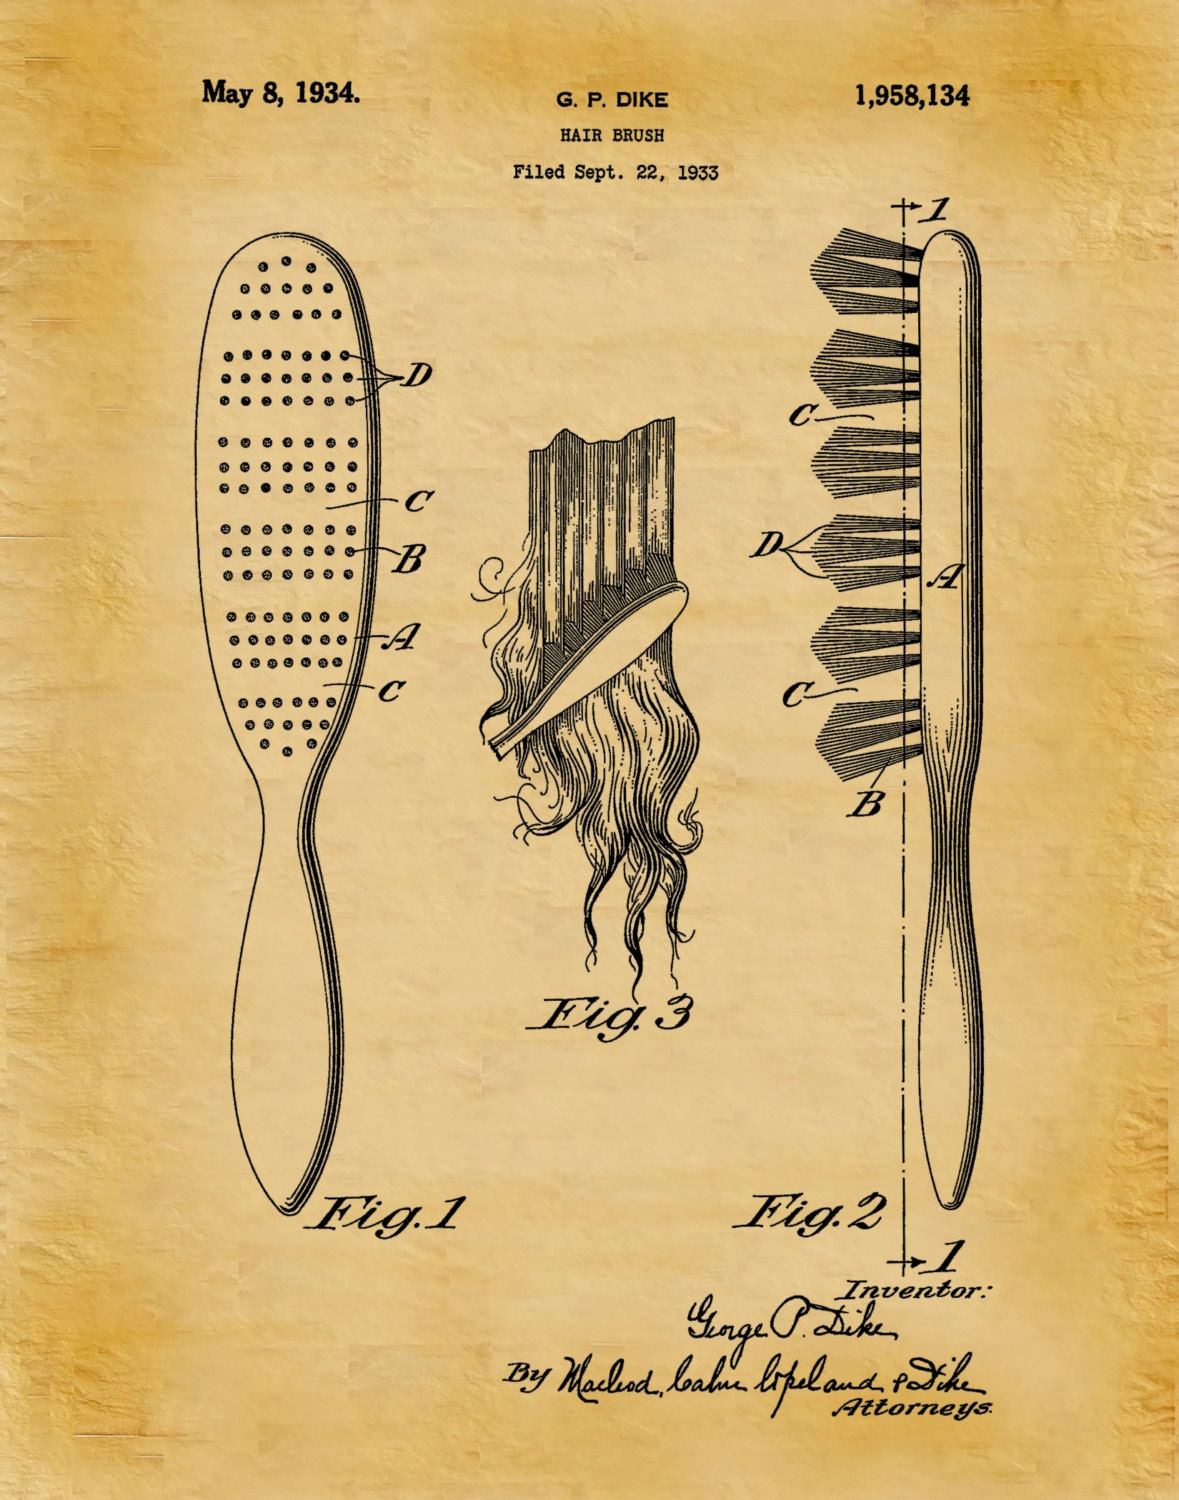 1934 hair brush patent print barber shop decor hair salon decor 1934 hair brush patent print barber shop decor hair salon decor hairdresser gift idea bathroom decor beauty parlor wall art malvernweather Images